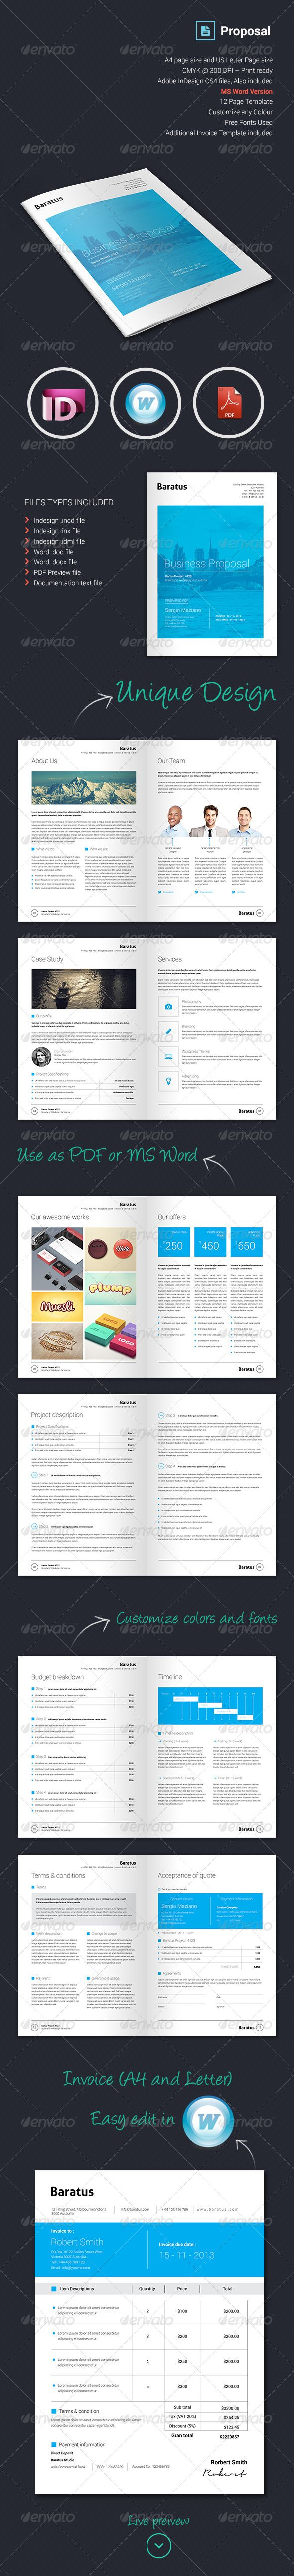 Ms Word Proposal Template Baratus  Proposal & Invoice Template  Business Project Proposals .